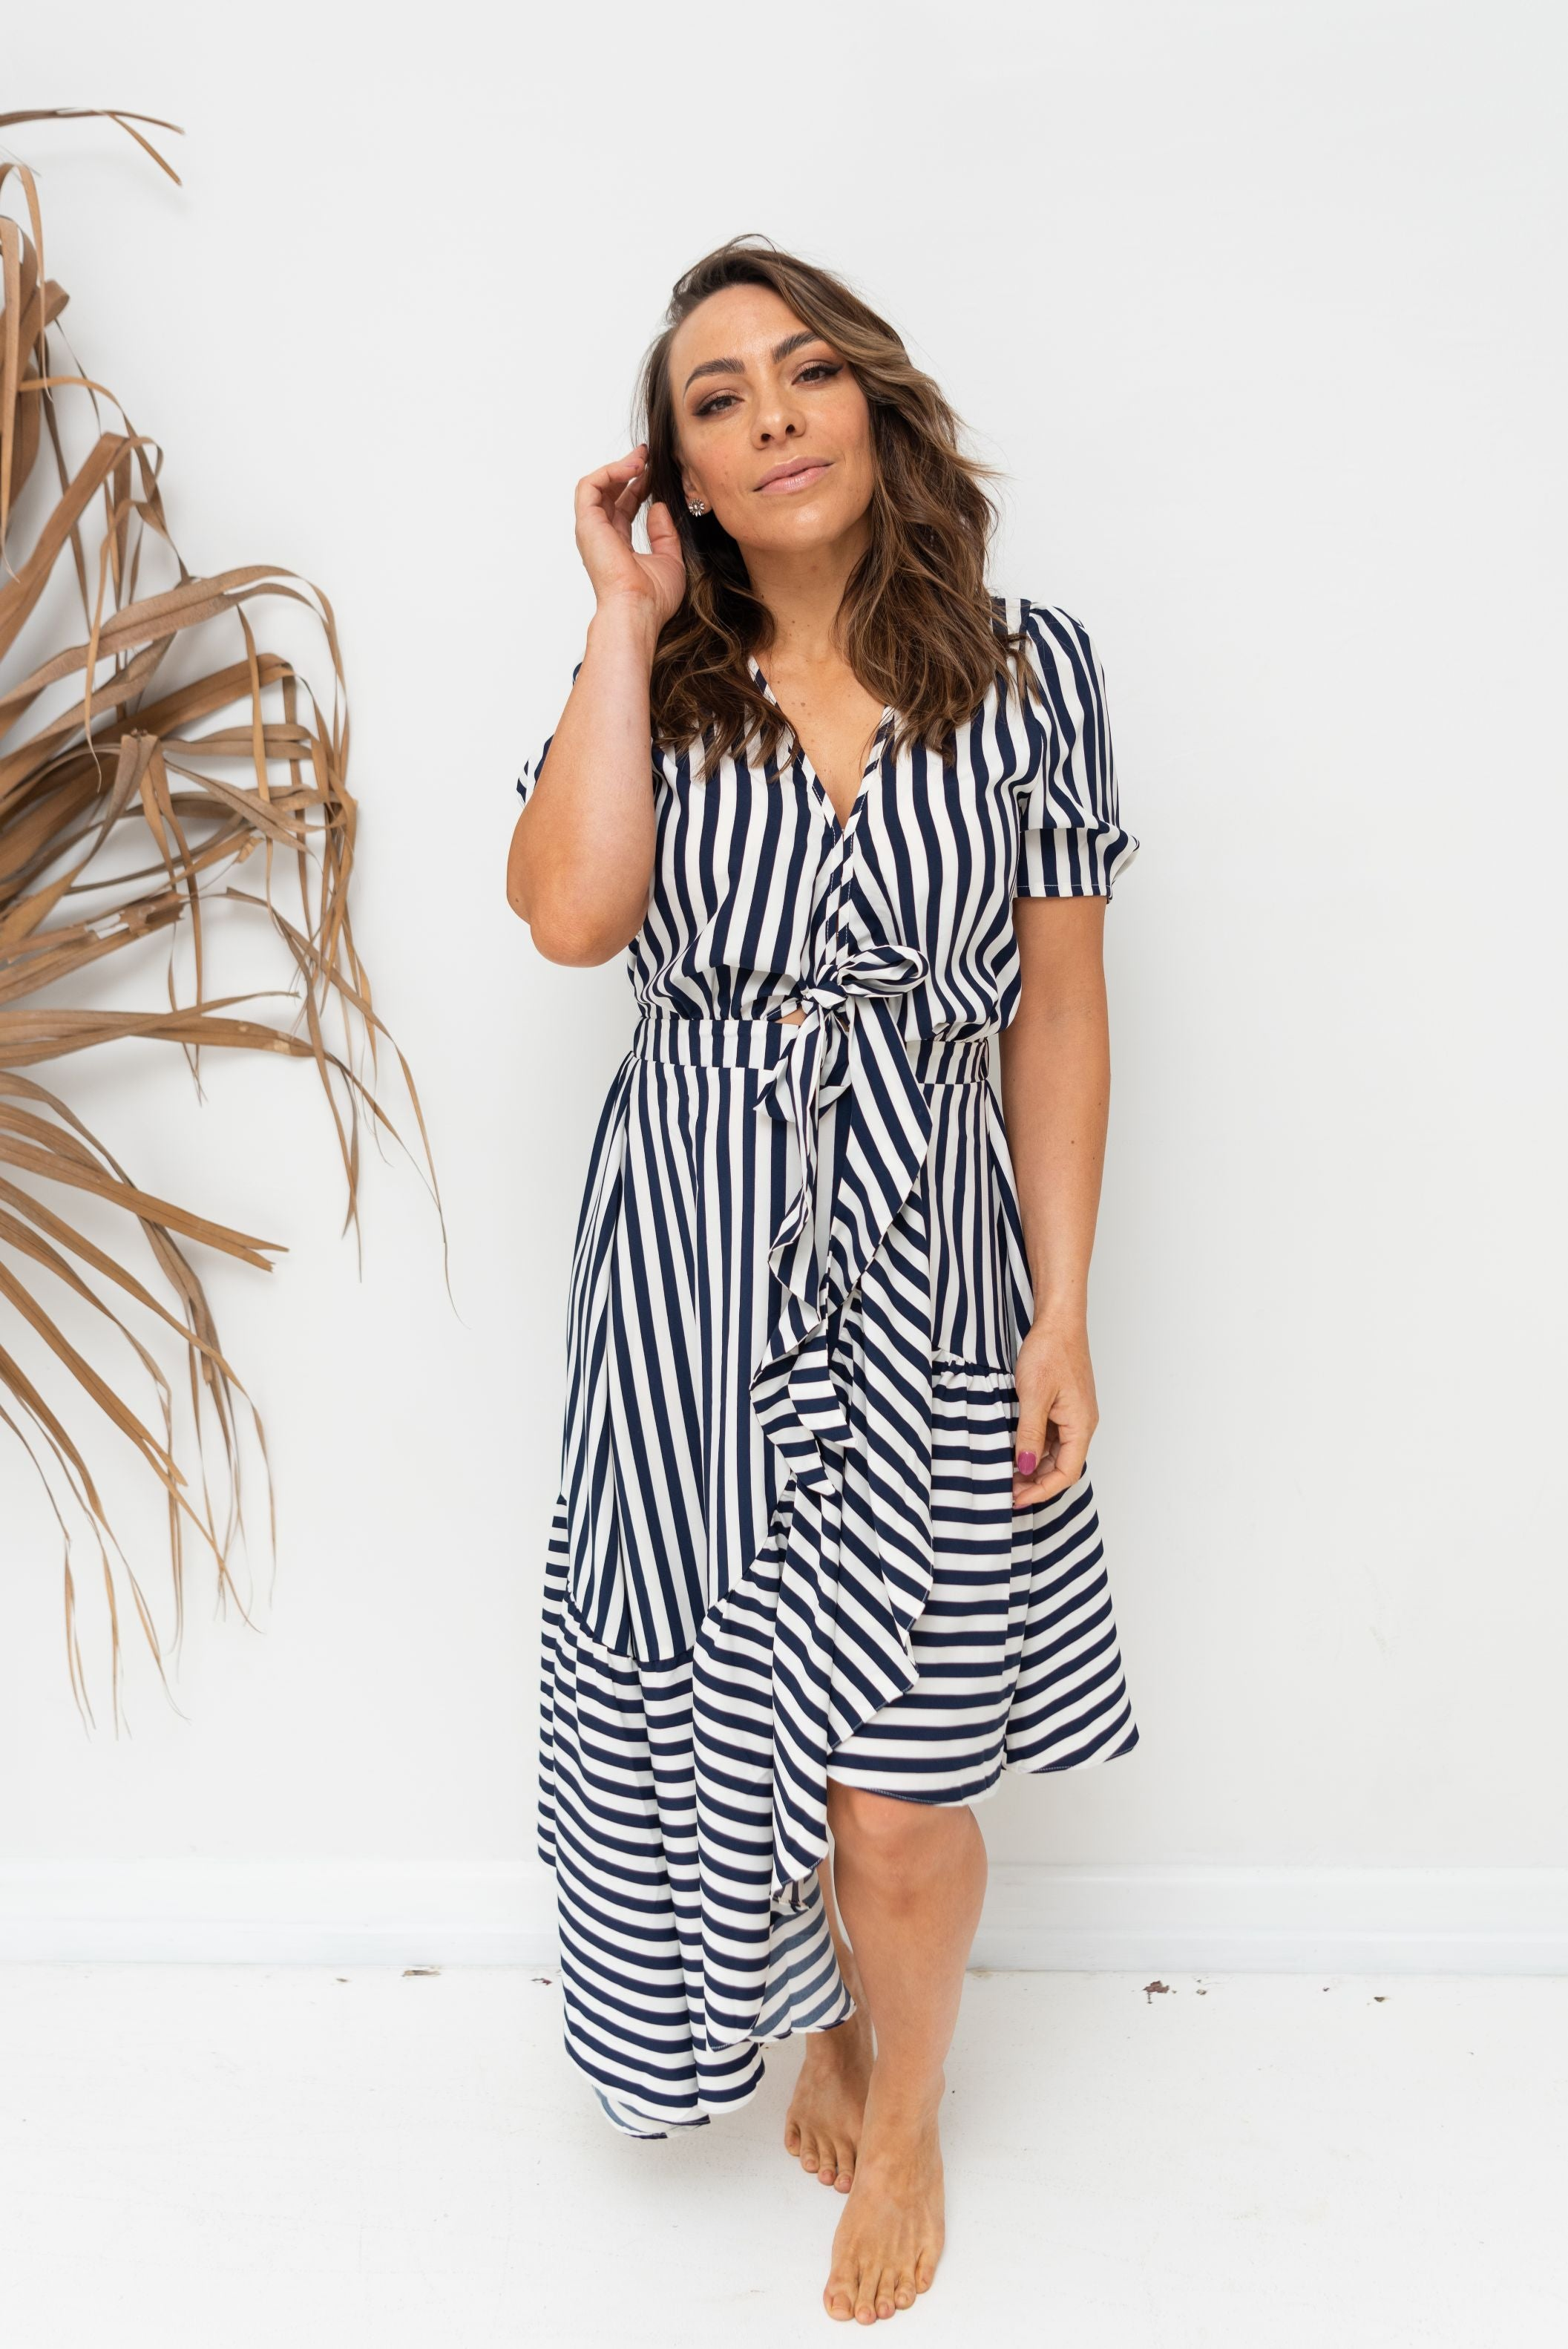 LIBBY DRESS - Inidgo Stripe